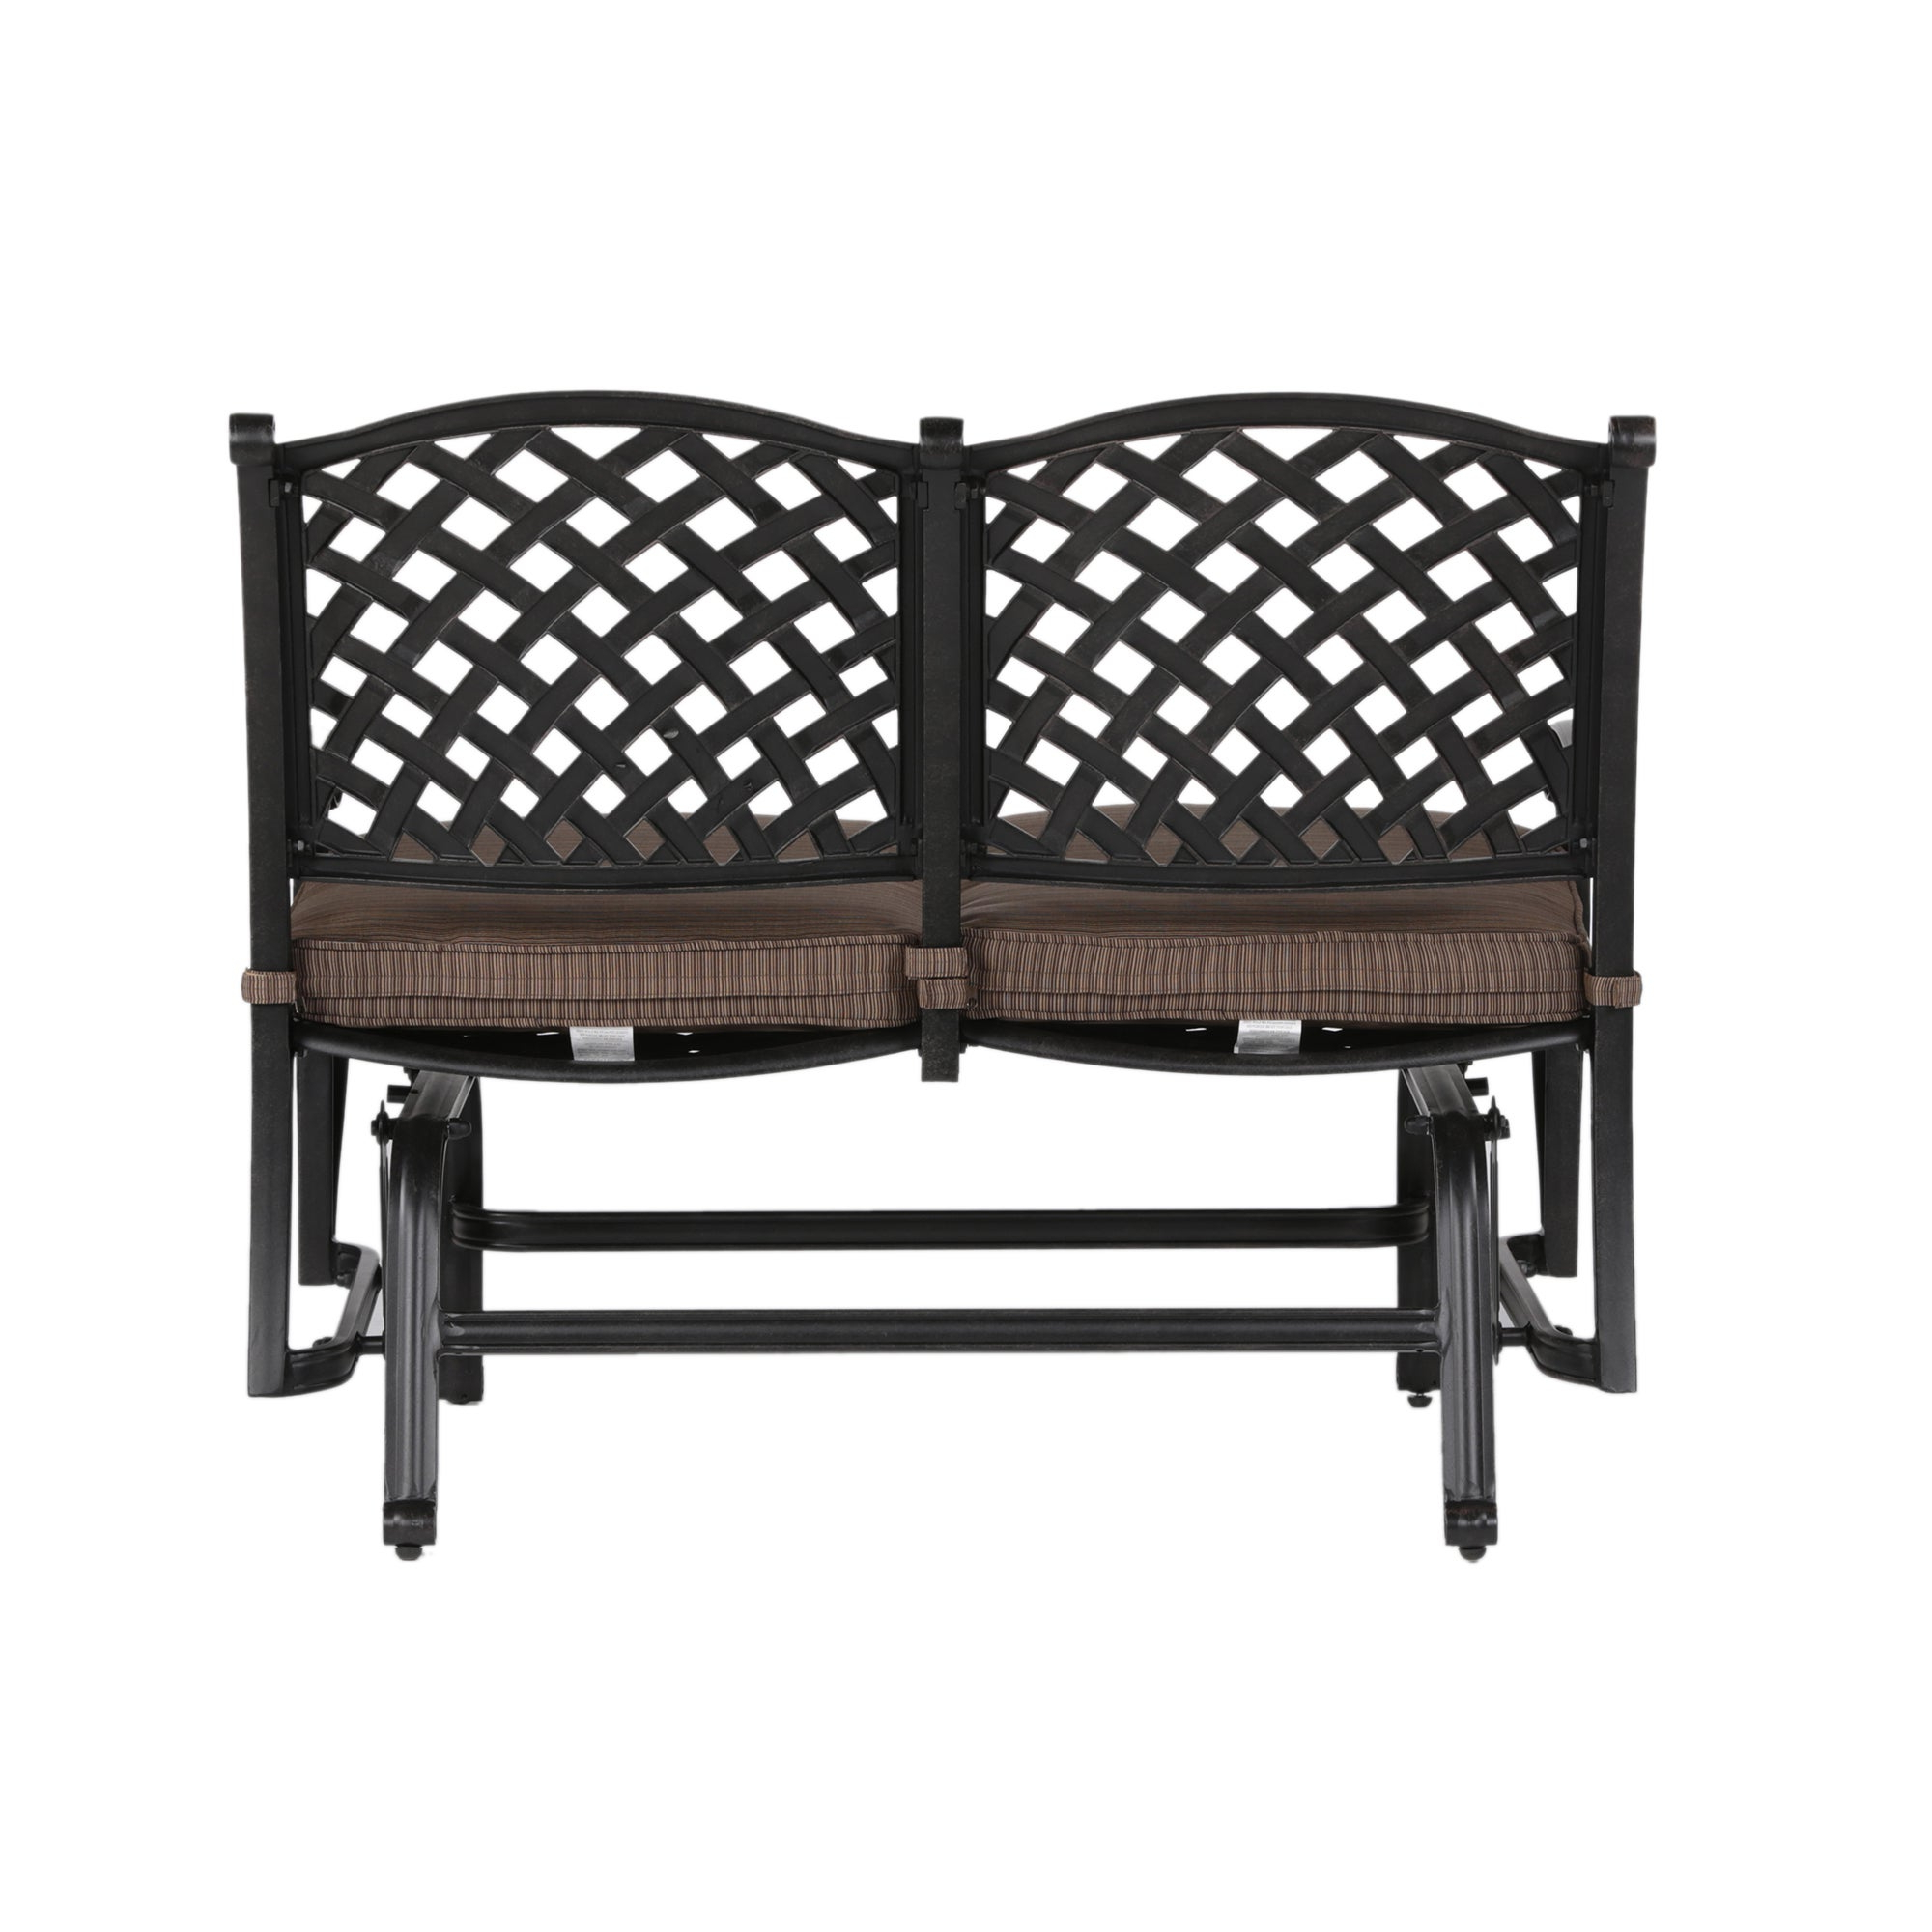 Glider Benches With Cushion Throughout Well Known South Ponto Aluminum Bench Glider With Cushion (View 18 of 30)